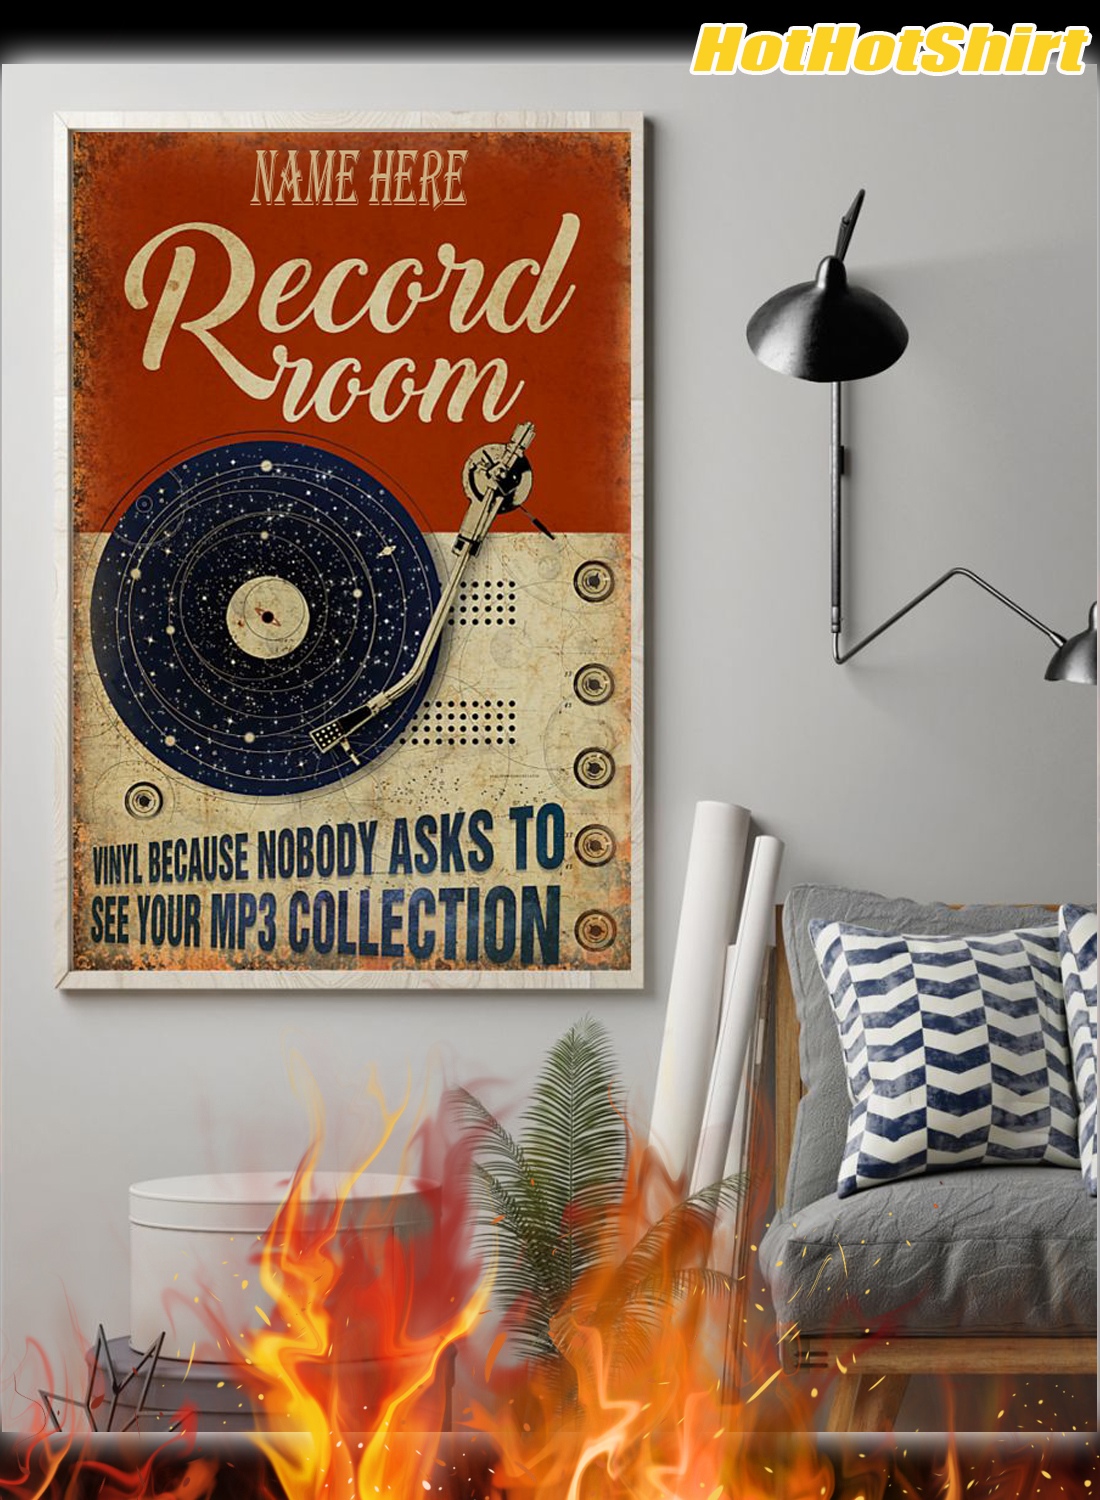 Personalized Custom Name Record Room Because Nobody Asks To See Your Mp3 Collection Poster 1